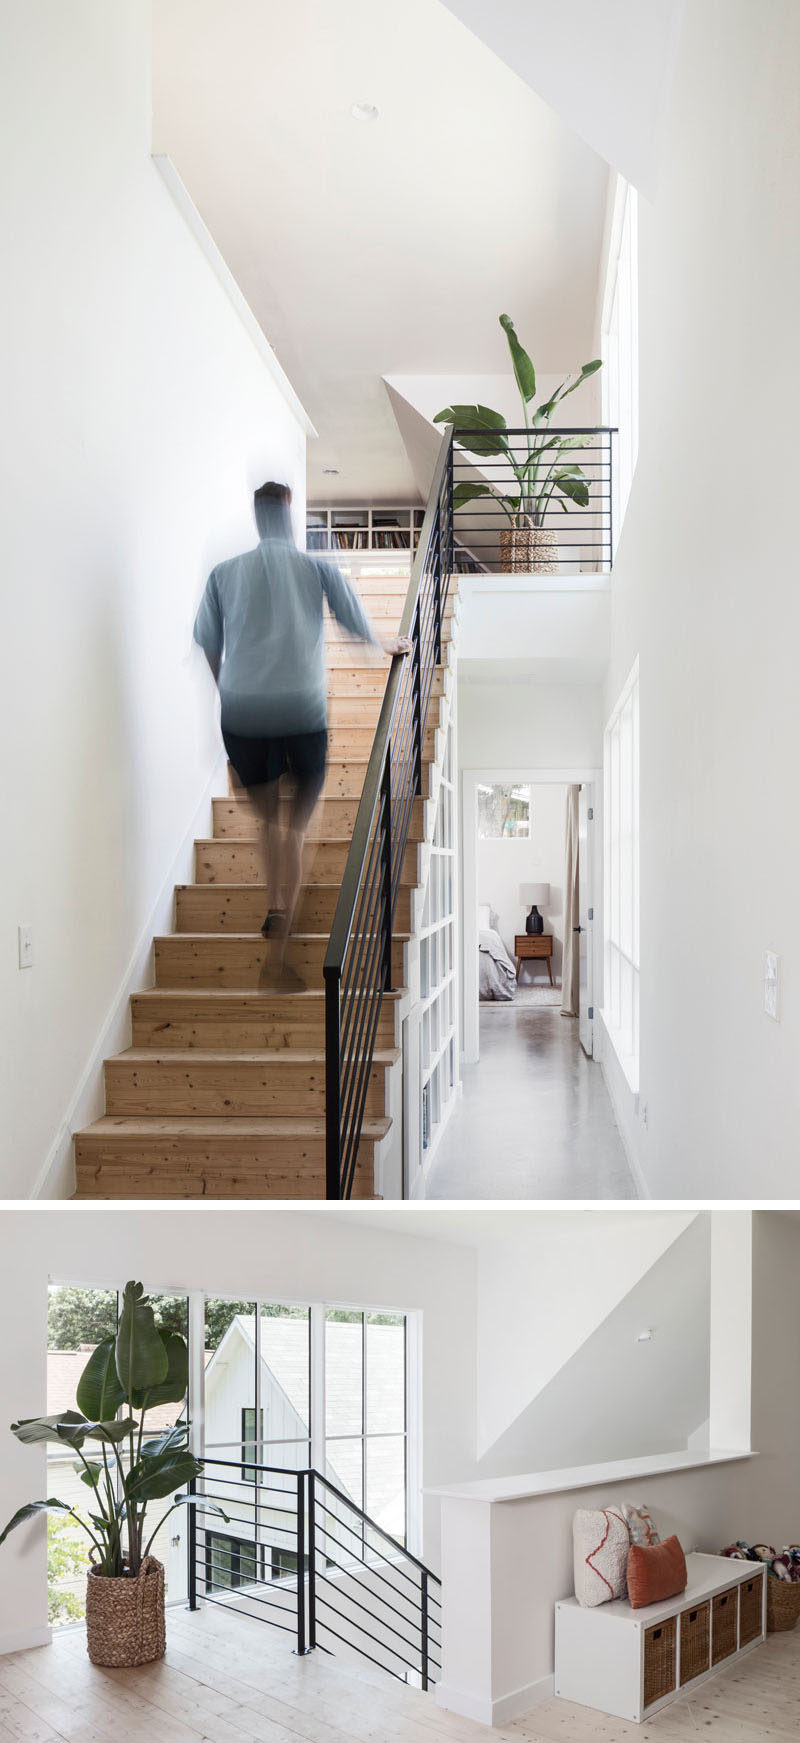 These simple wood stairs with a black handrail lead to the upper floor of the home. #WoodStairs #BlackHandrail